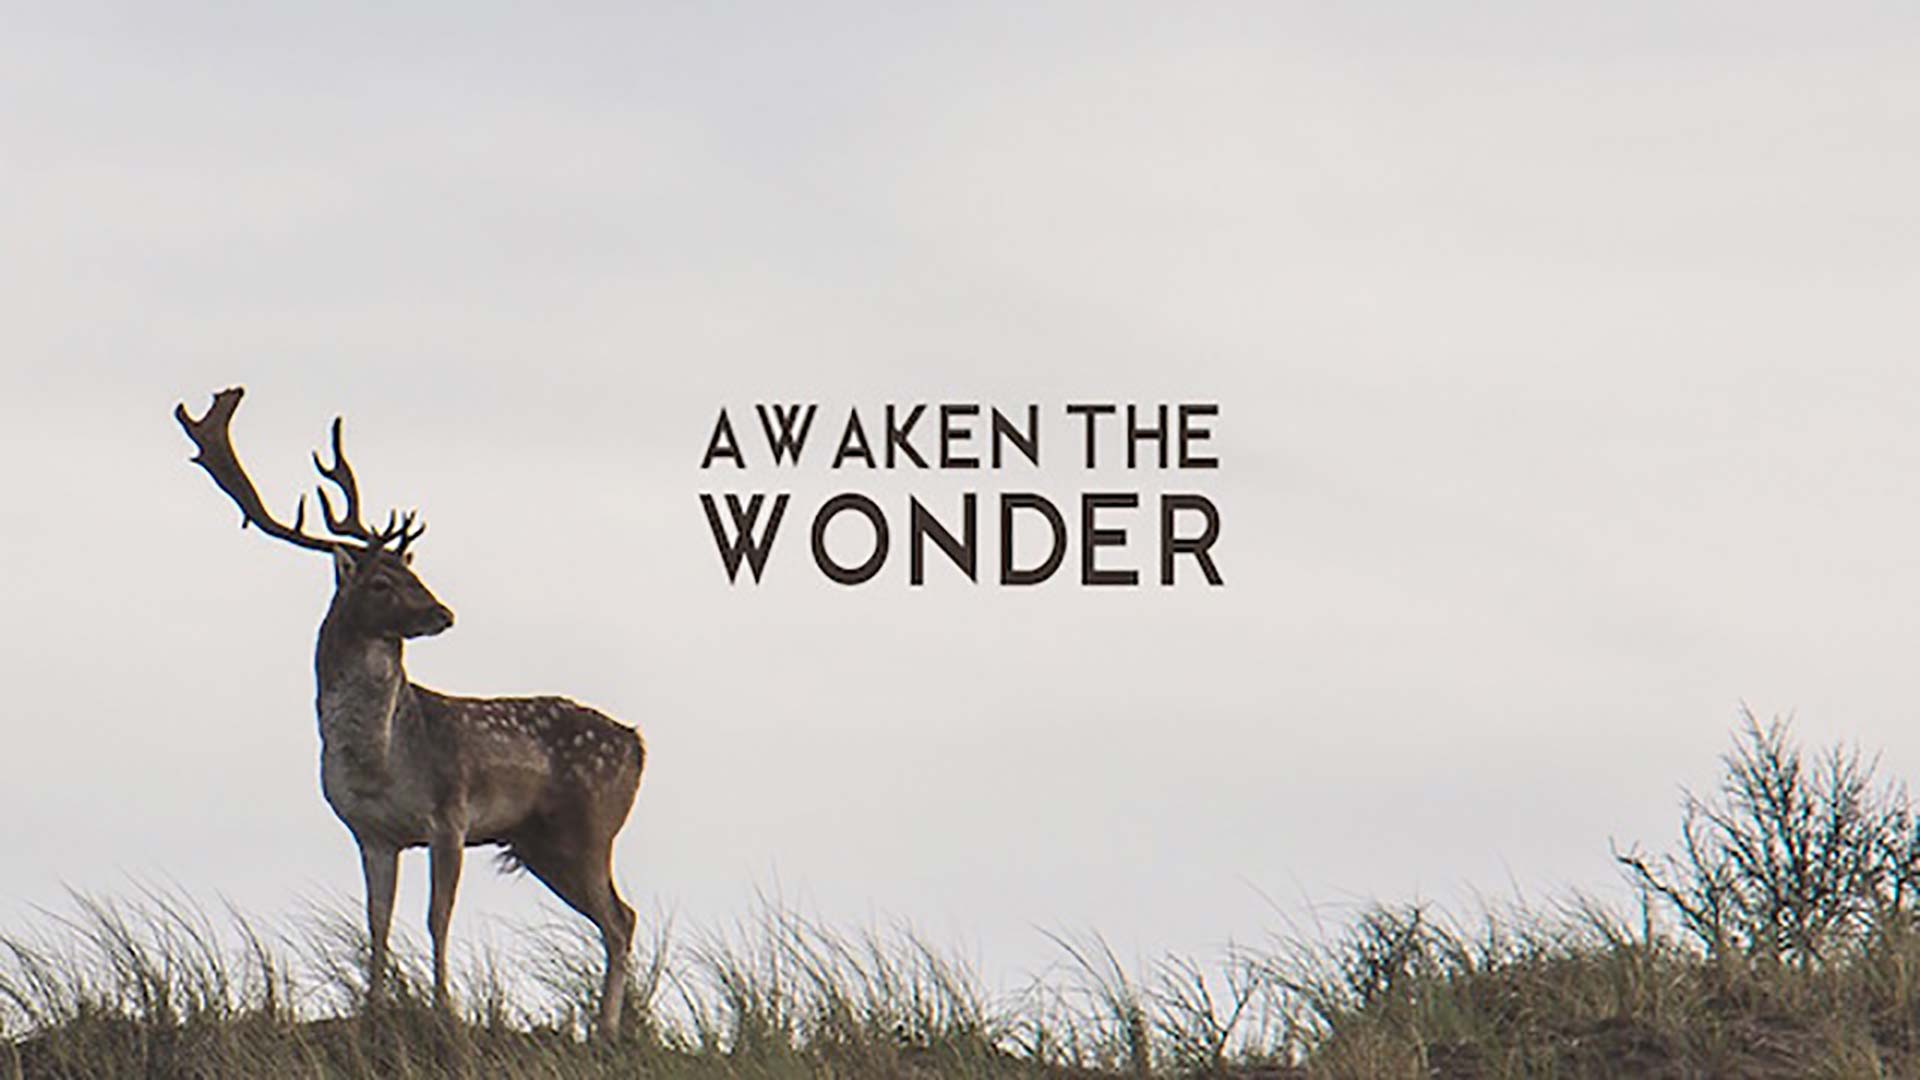 Awaken The Wonder